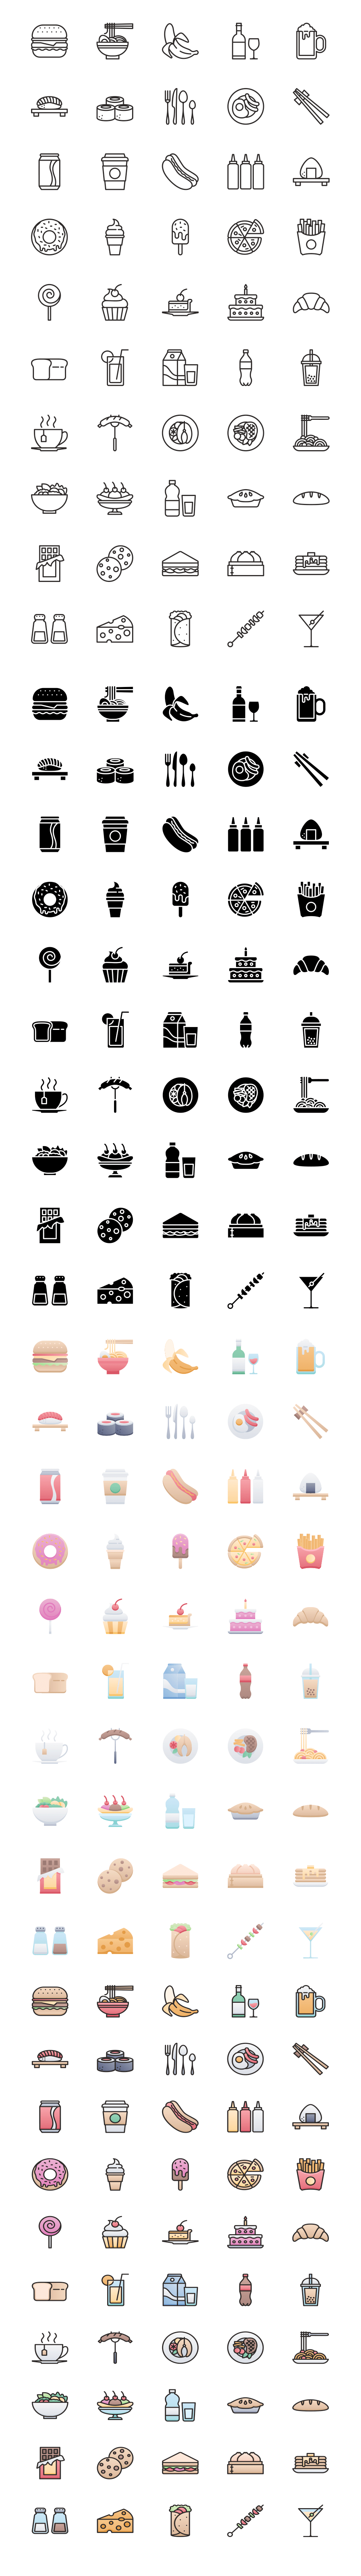 50 Food & Drink Free Icons - From doughnuts to ramen, beer to spaghetti, our Food & Drink icon pack has all the icons you could need for menus, restaurants, cafes, delivery apps, and everything in between.